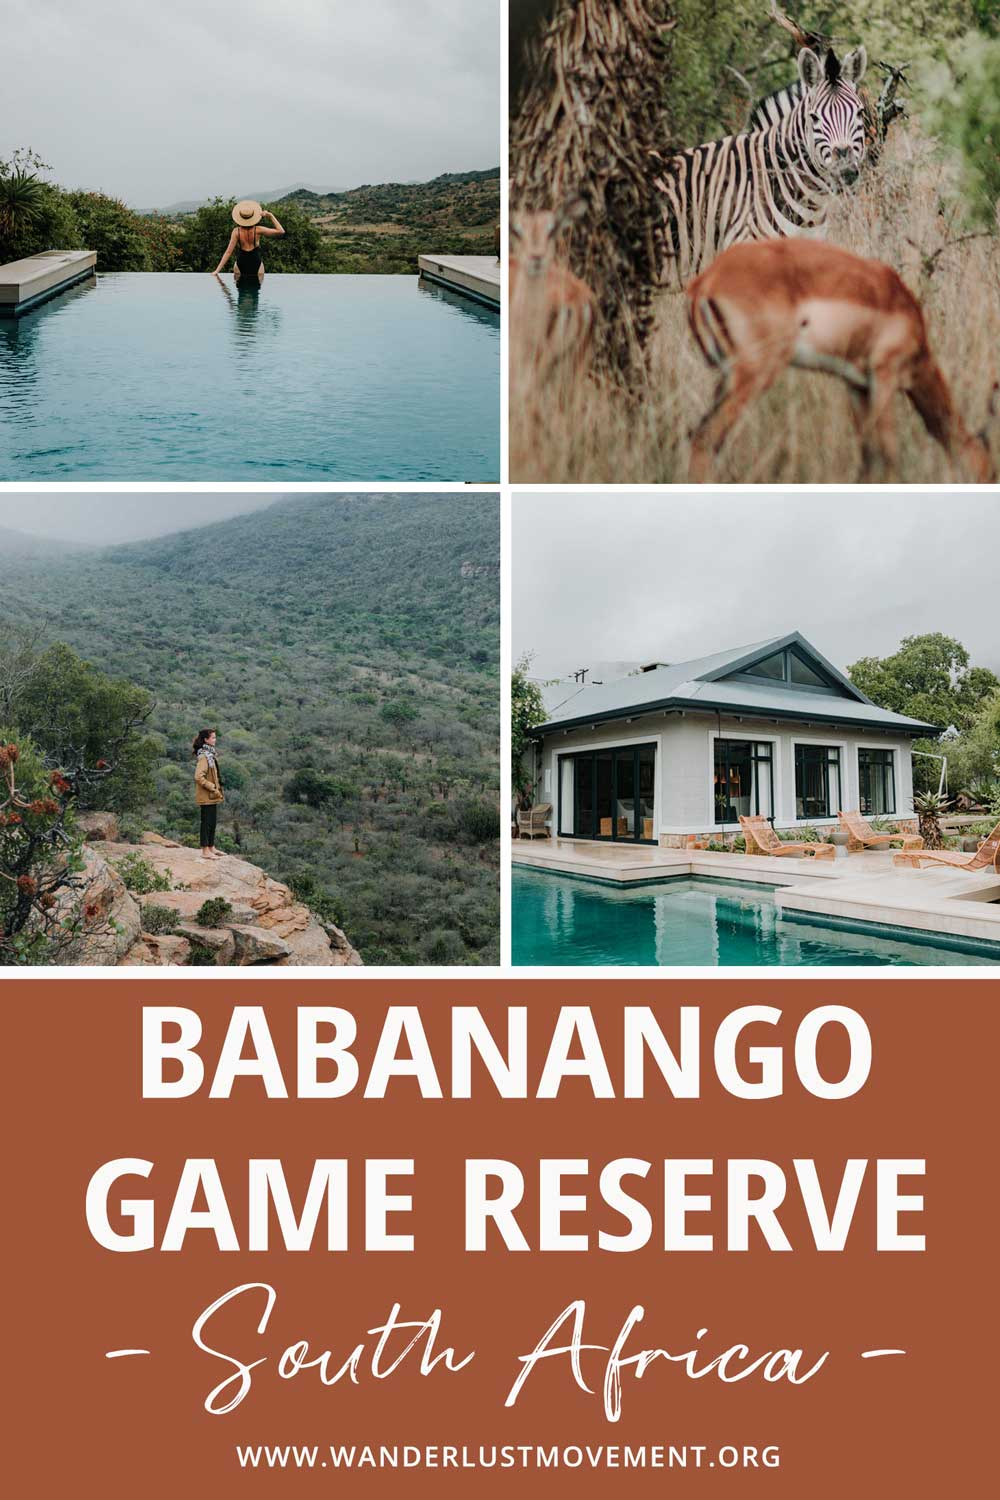 Babanango Game Reserve: Where Conservation & Community Meet